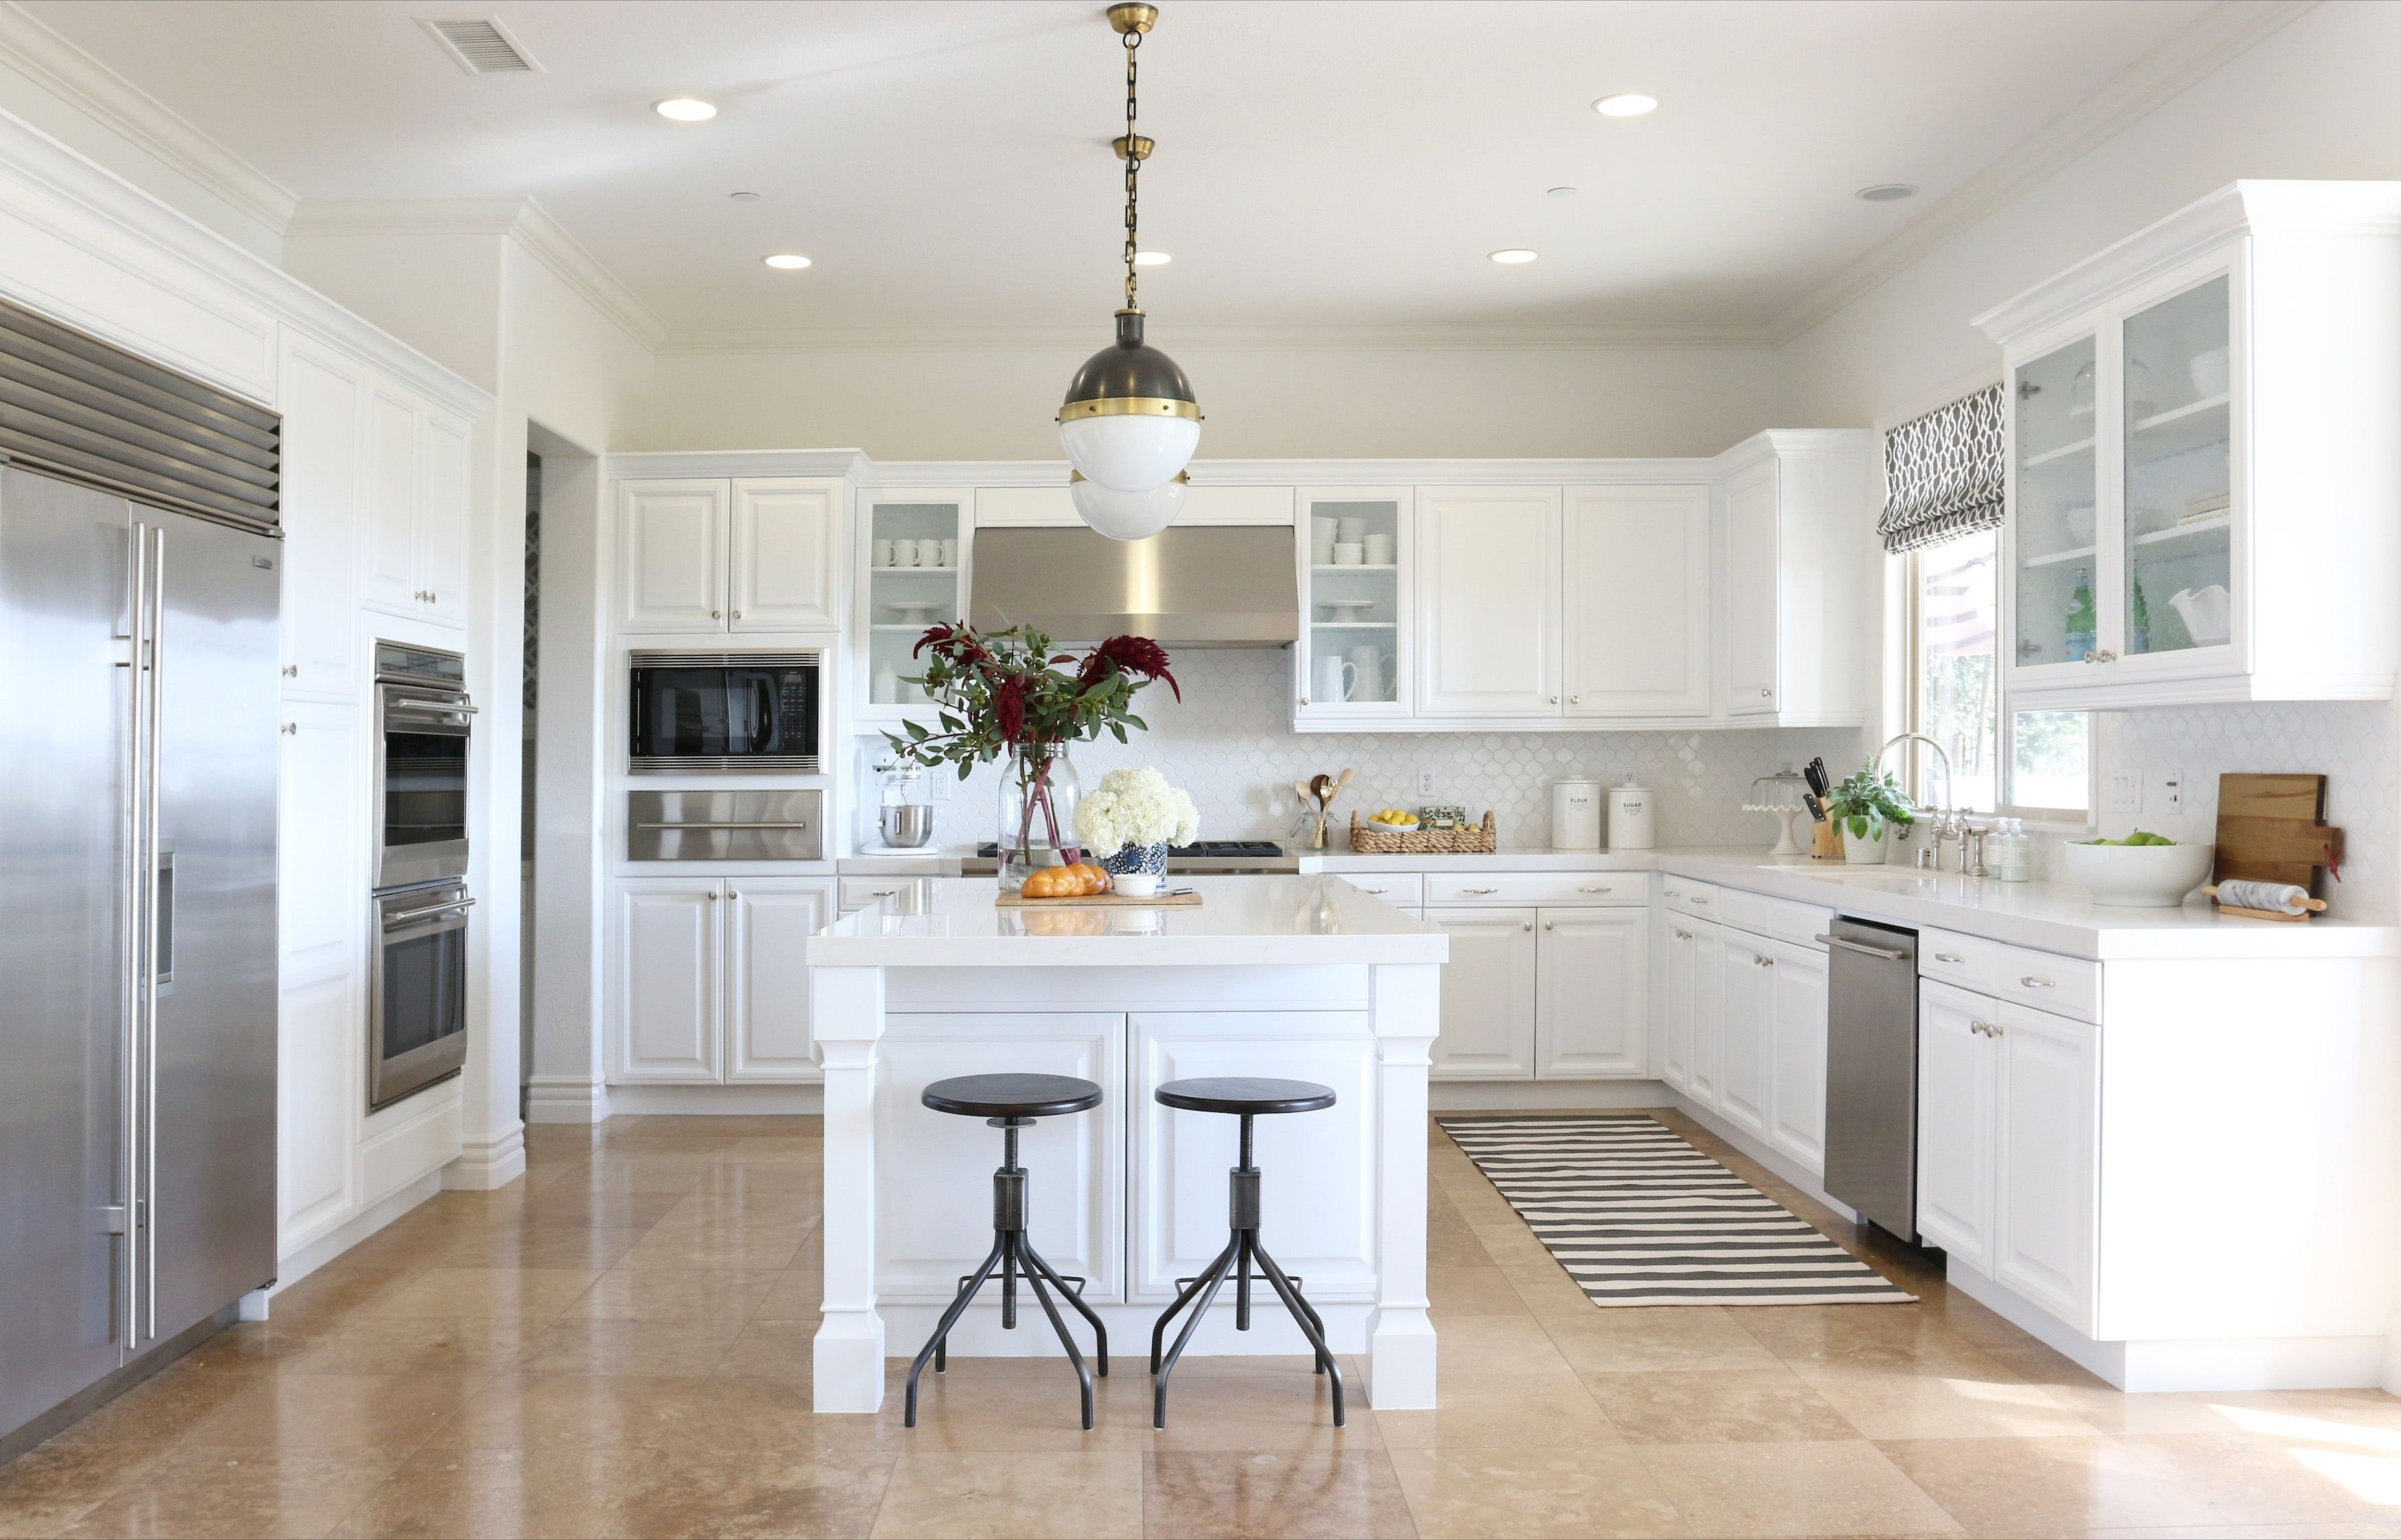 10 Gorgeous Kitchen Ideas With White Cabinets 11 best white kitchen cabinets design ideas for white cabinets 2 2020